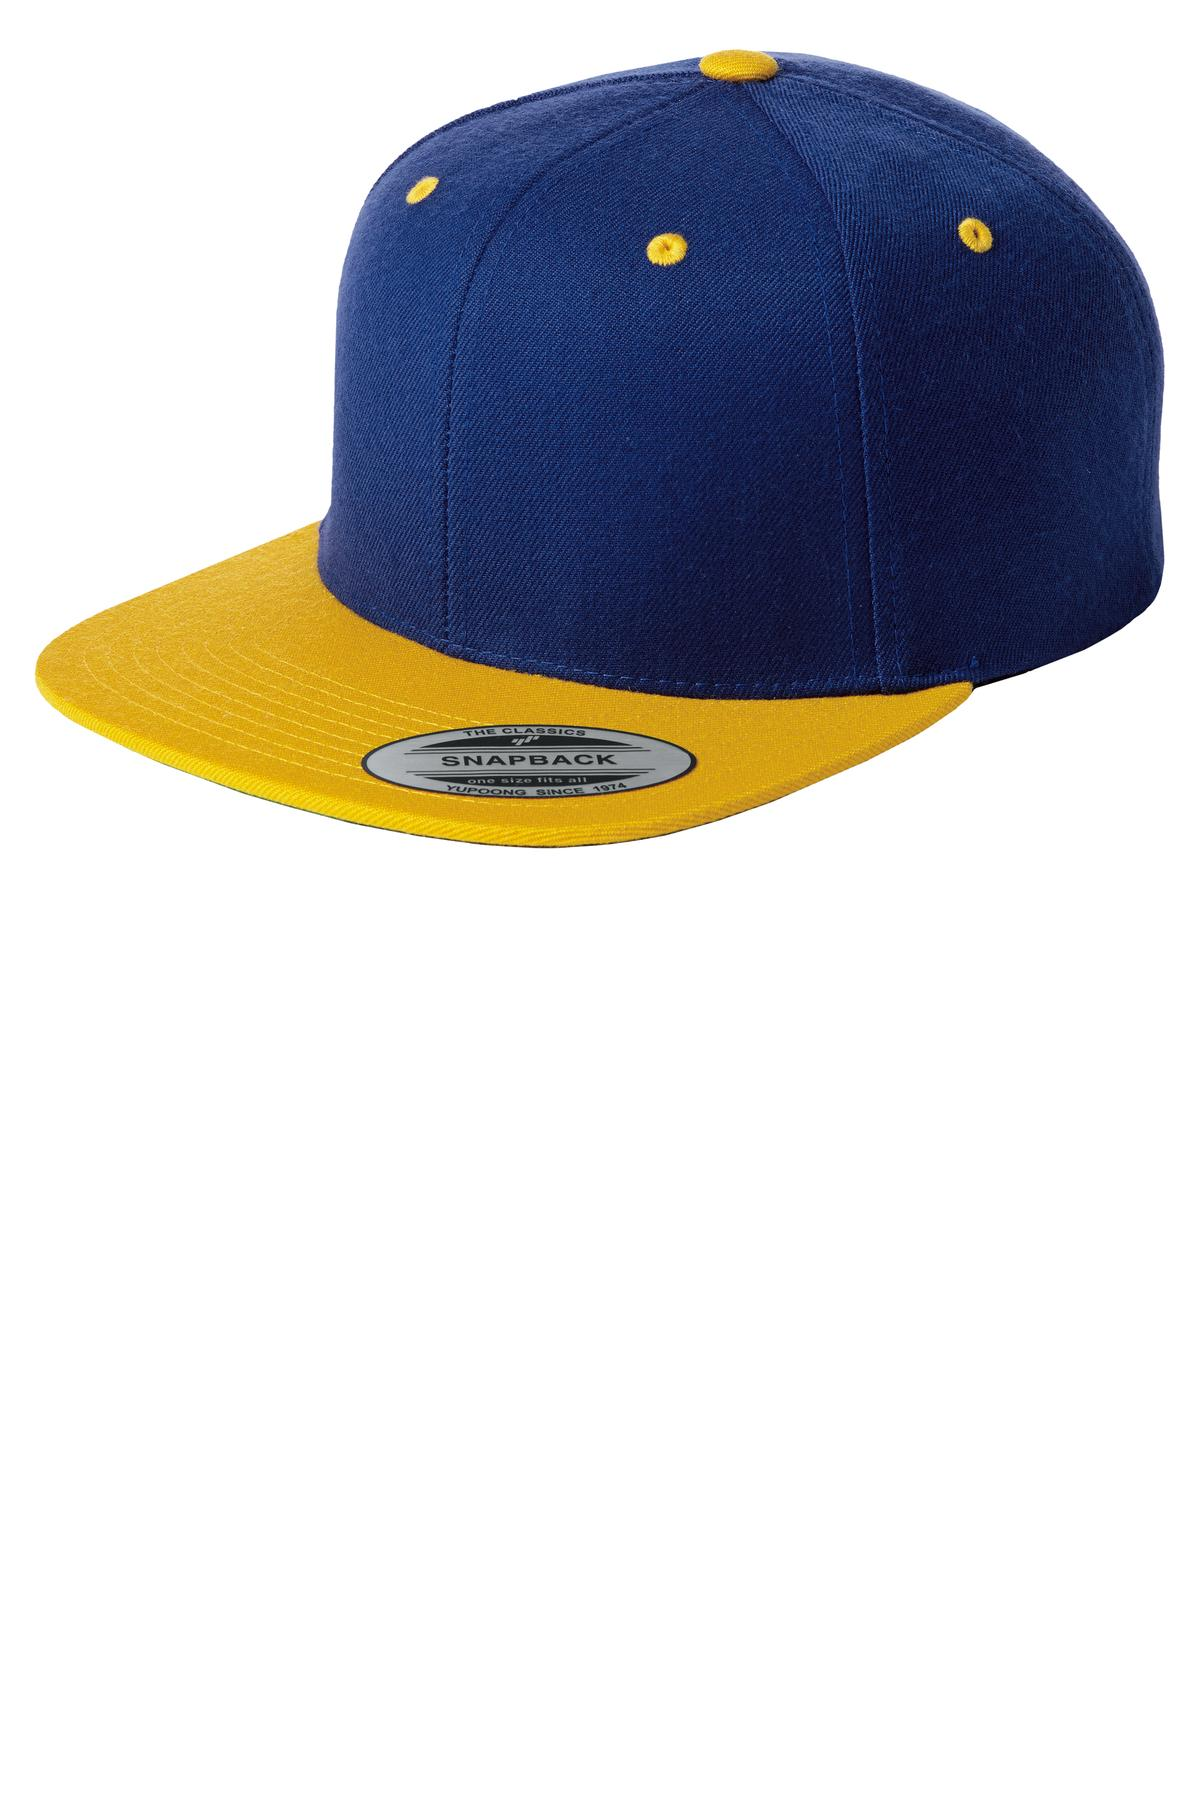 Sport-Tek ®  Yupoong ®  Flat Bill Snapback Cap. STC19 - True Royal/ Gold